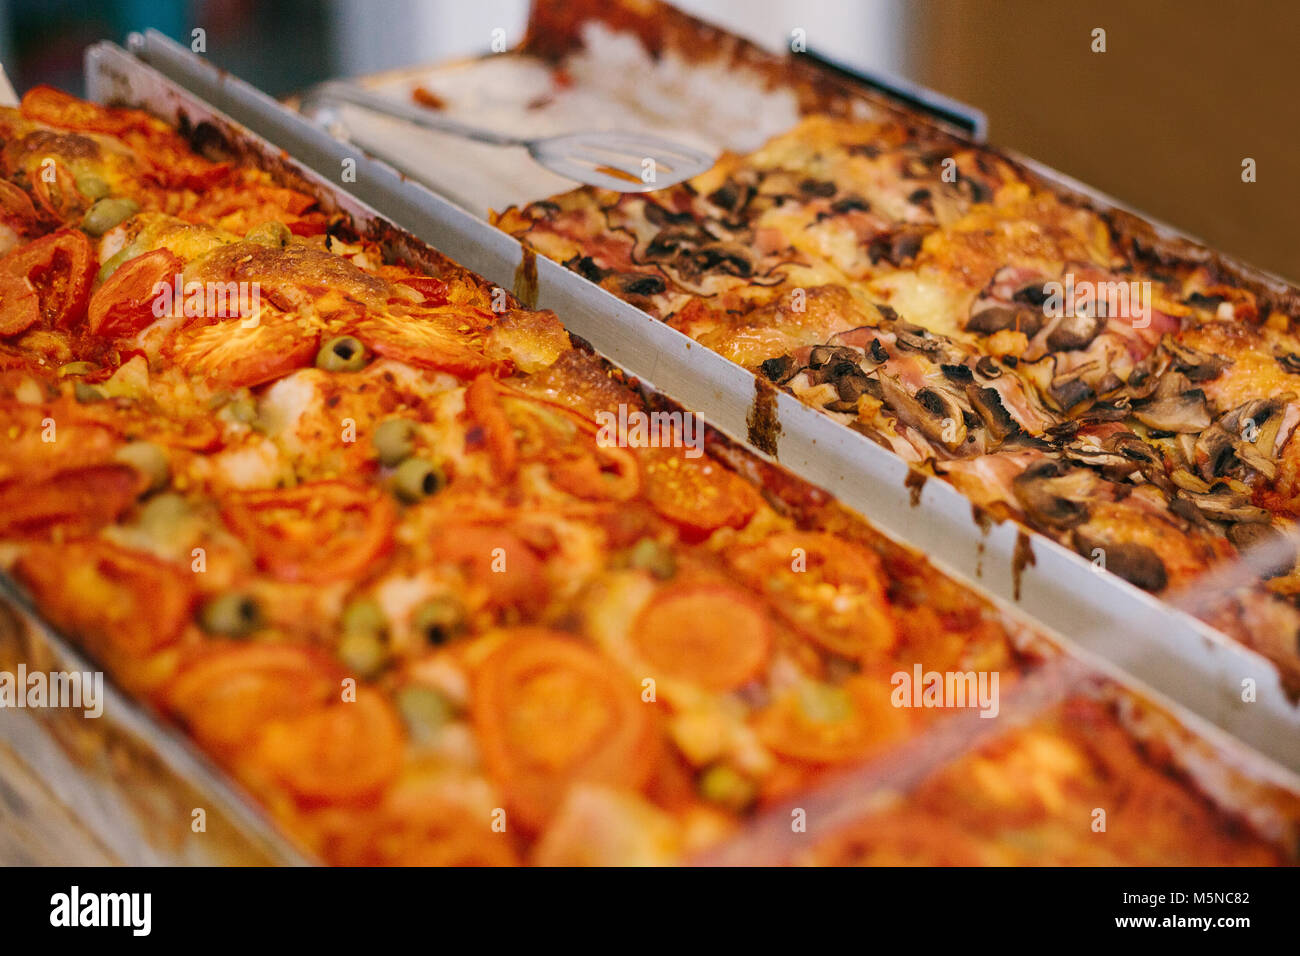 A delicious baked traditional pizza with cheese, tomatoes, mushrooms and olives is sold in the bakery. - Stock Image